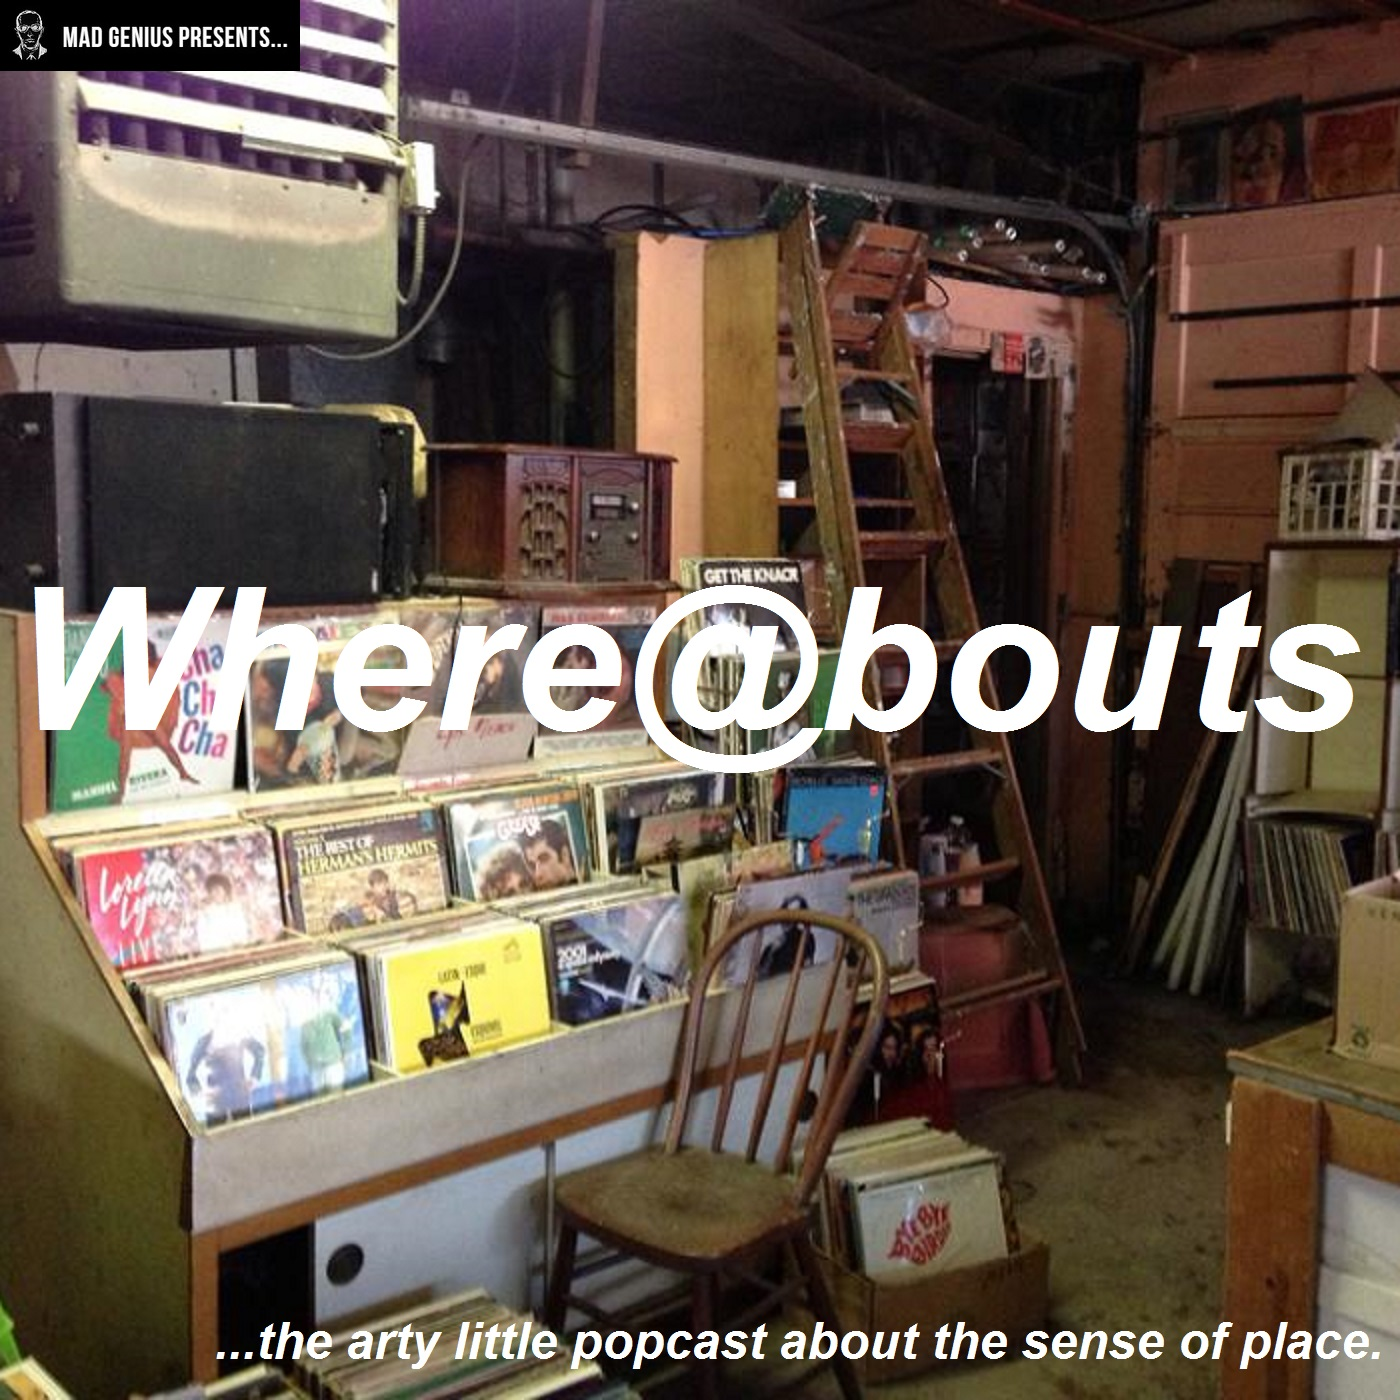 Whereabouts - Mad Genius presents...